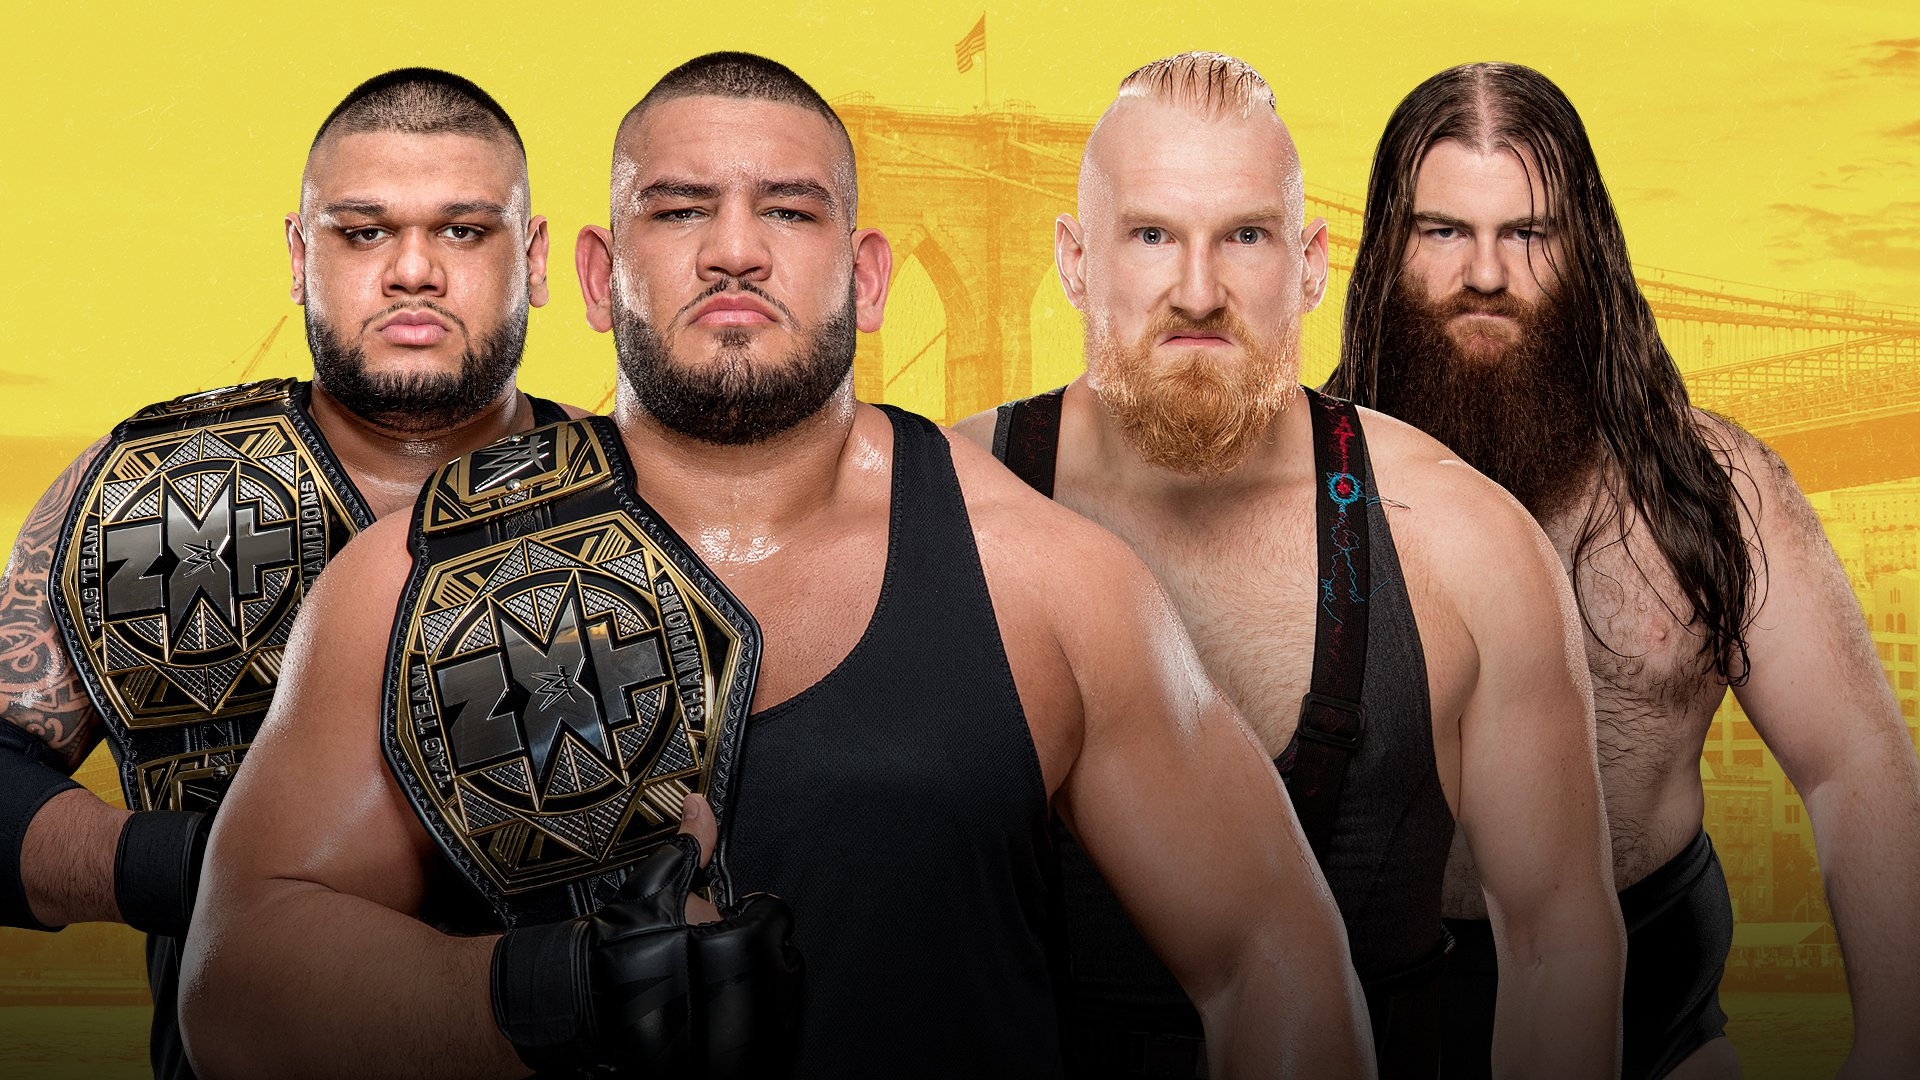 NXT TakeOver - Brooklyn III: Authors of Pain vs. Sanity